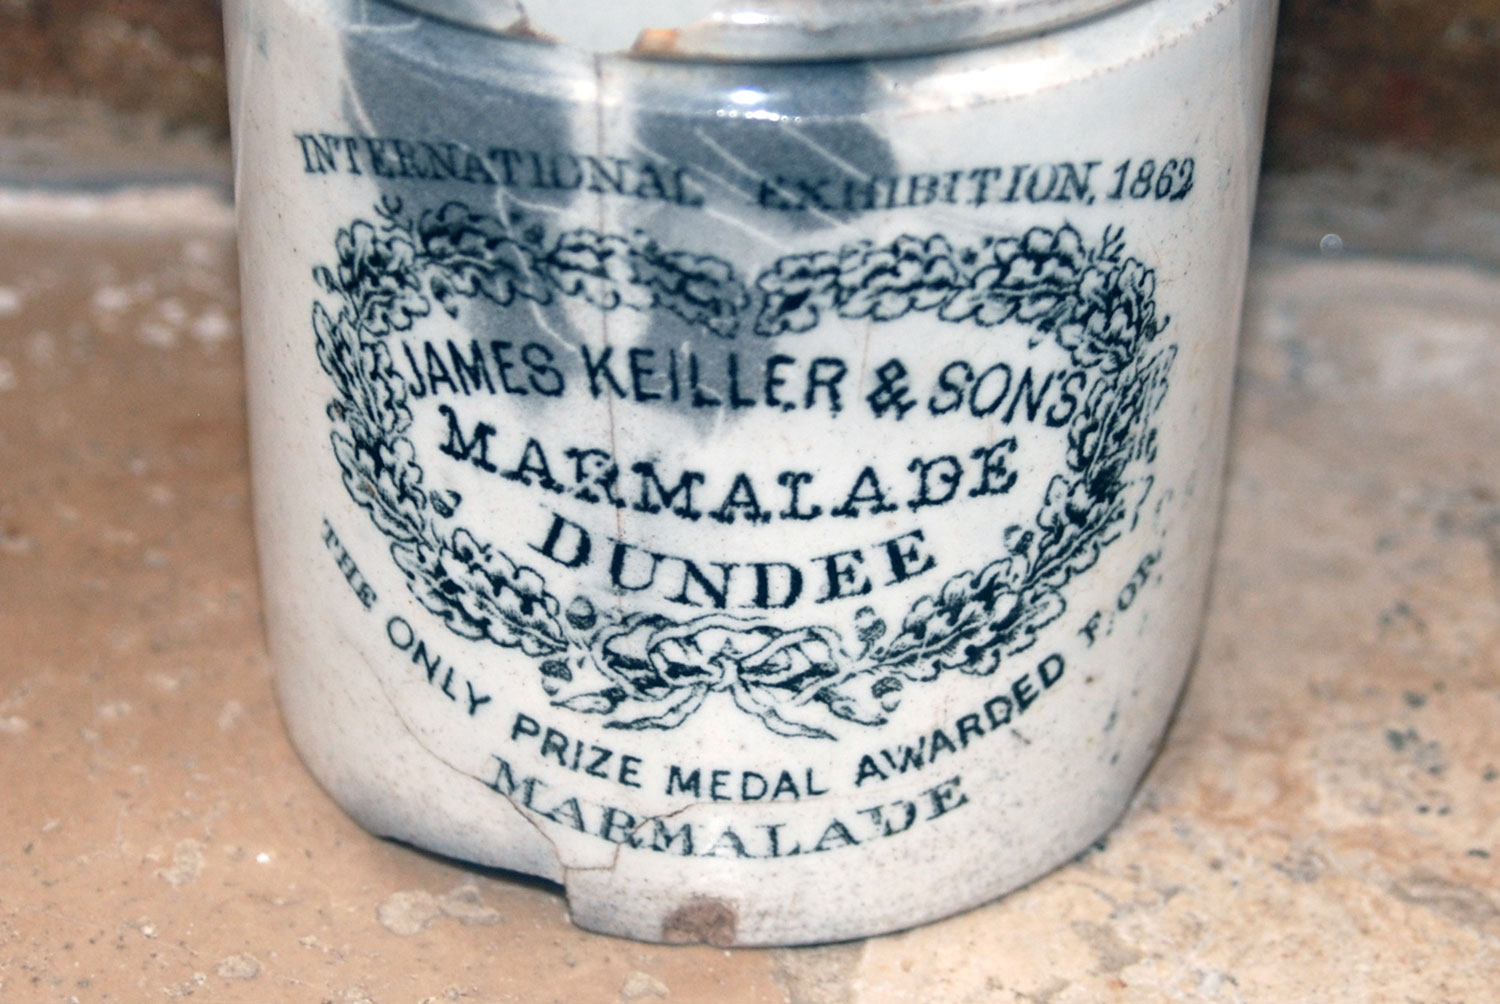 antique victorian rare chubby one pound 1860s james keiller dundee marmalade english advertising pot crock jar